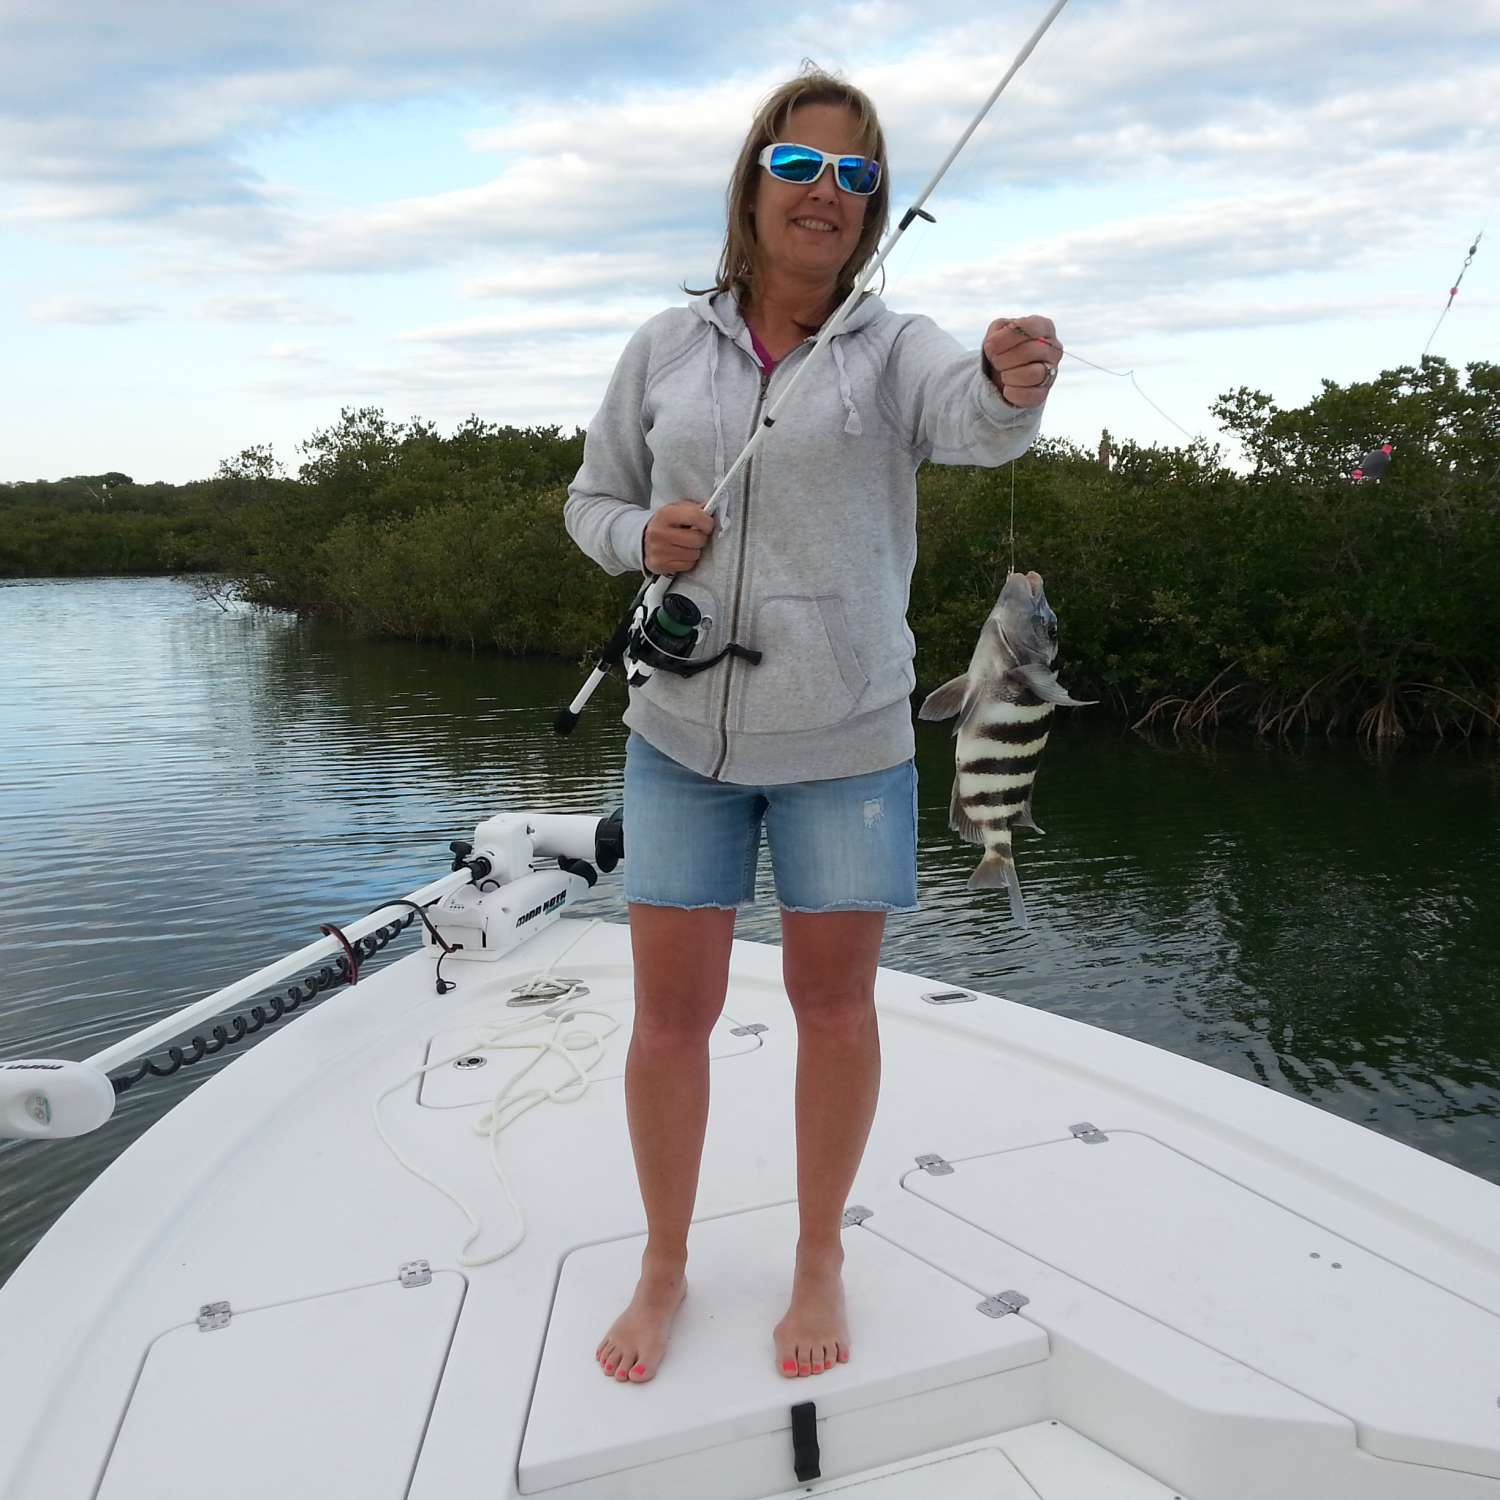 Title: Lori's Fish - On board their Sportsman Tournament 214 Bay Boat - Location: Port Orange, Florida. Participating in the Photo Contest #SportsmanMarch2016